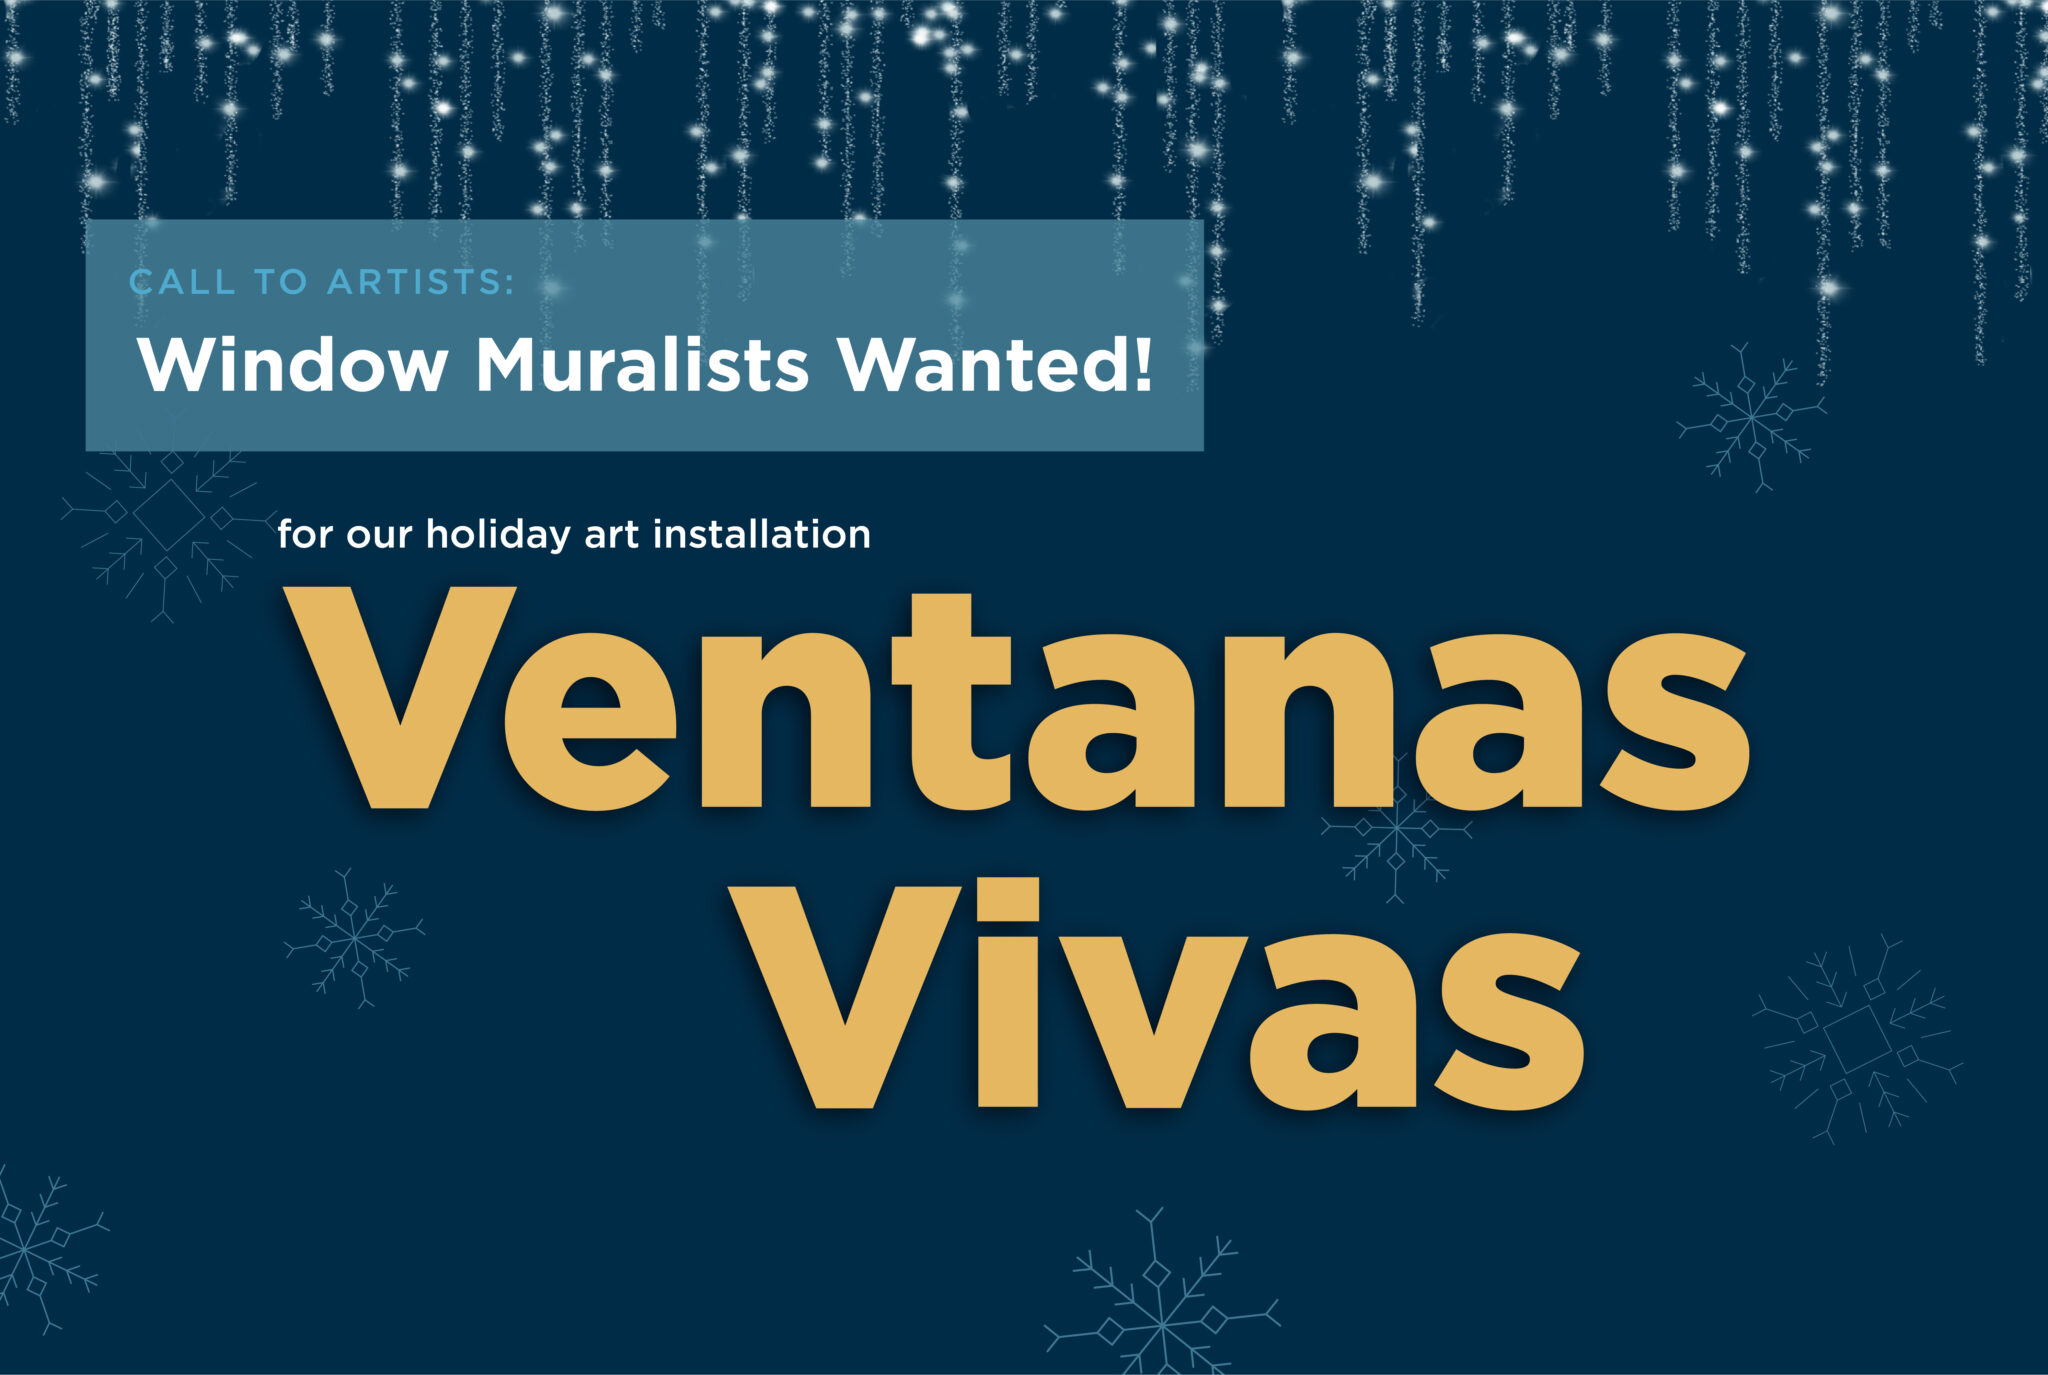 Call to Artists: Window Muralists Wanted!